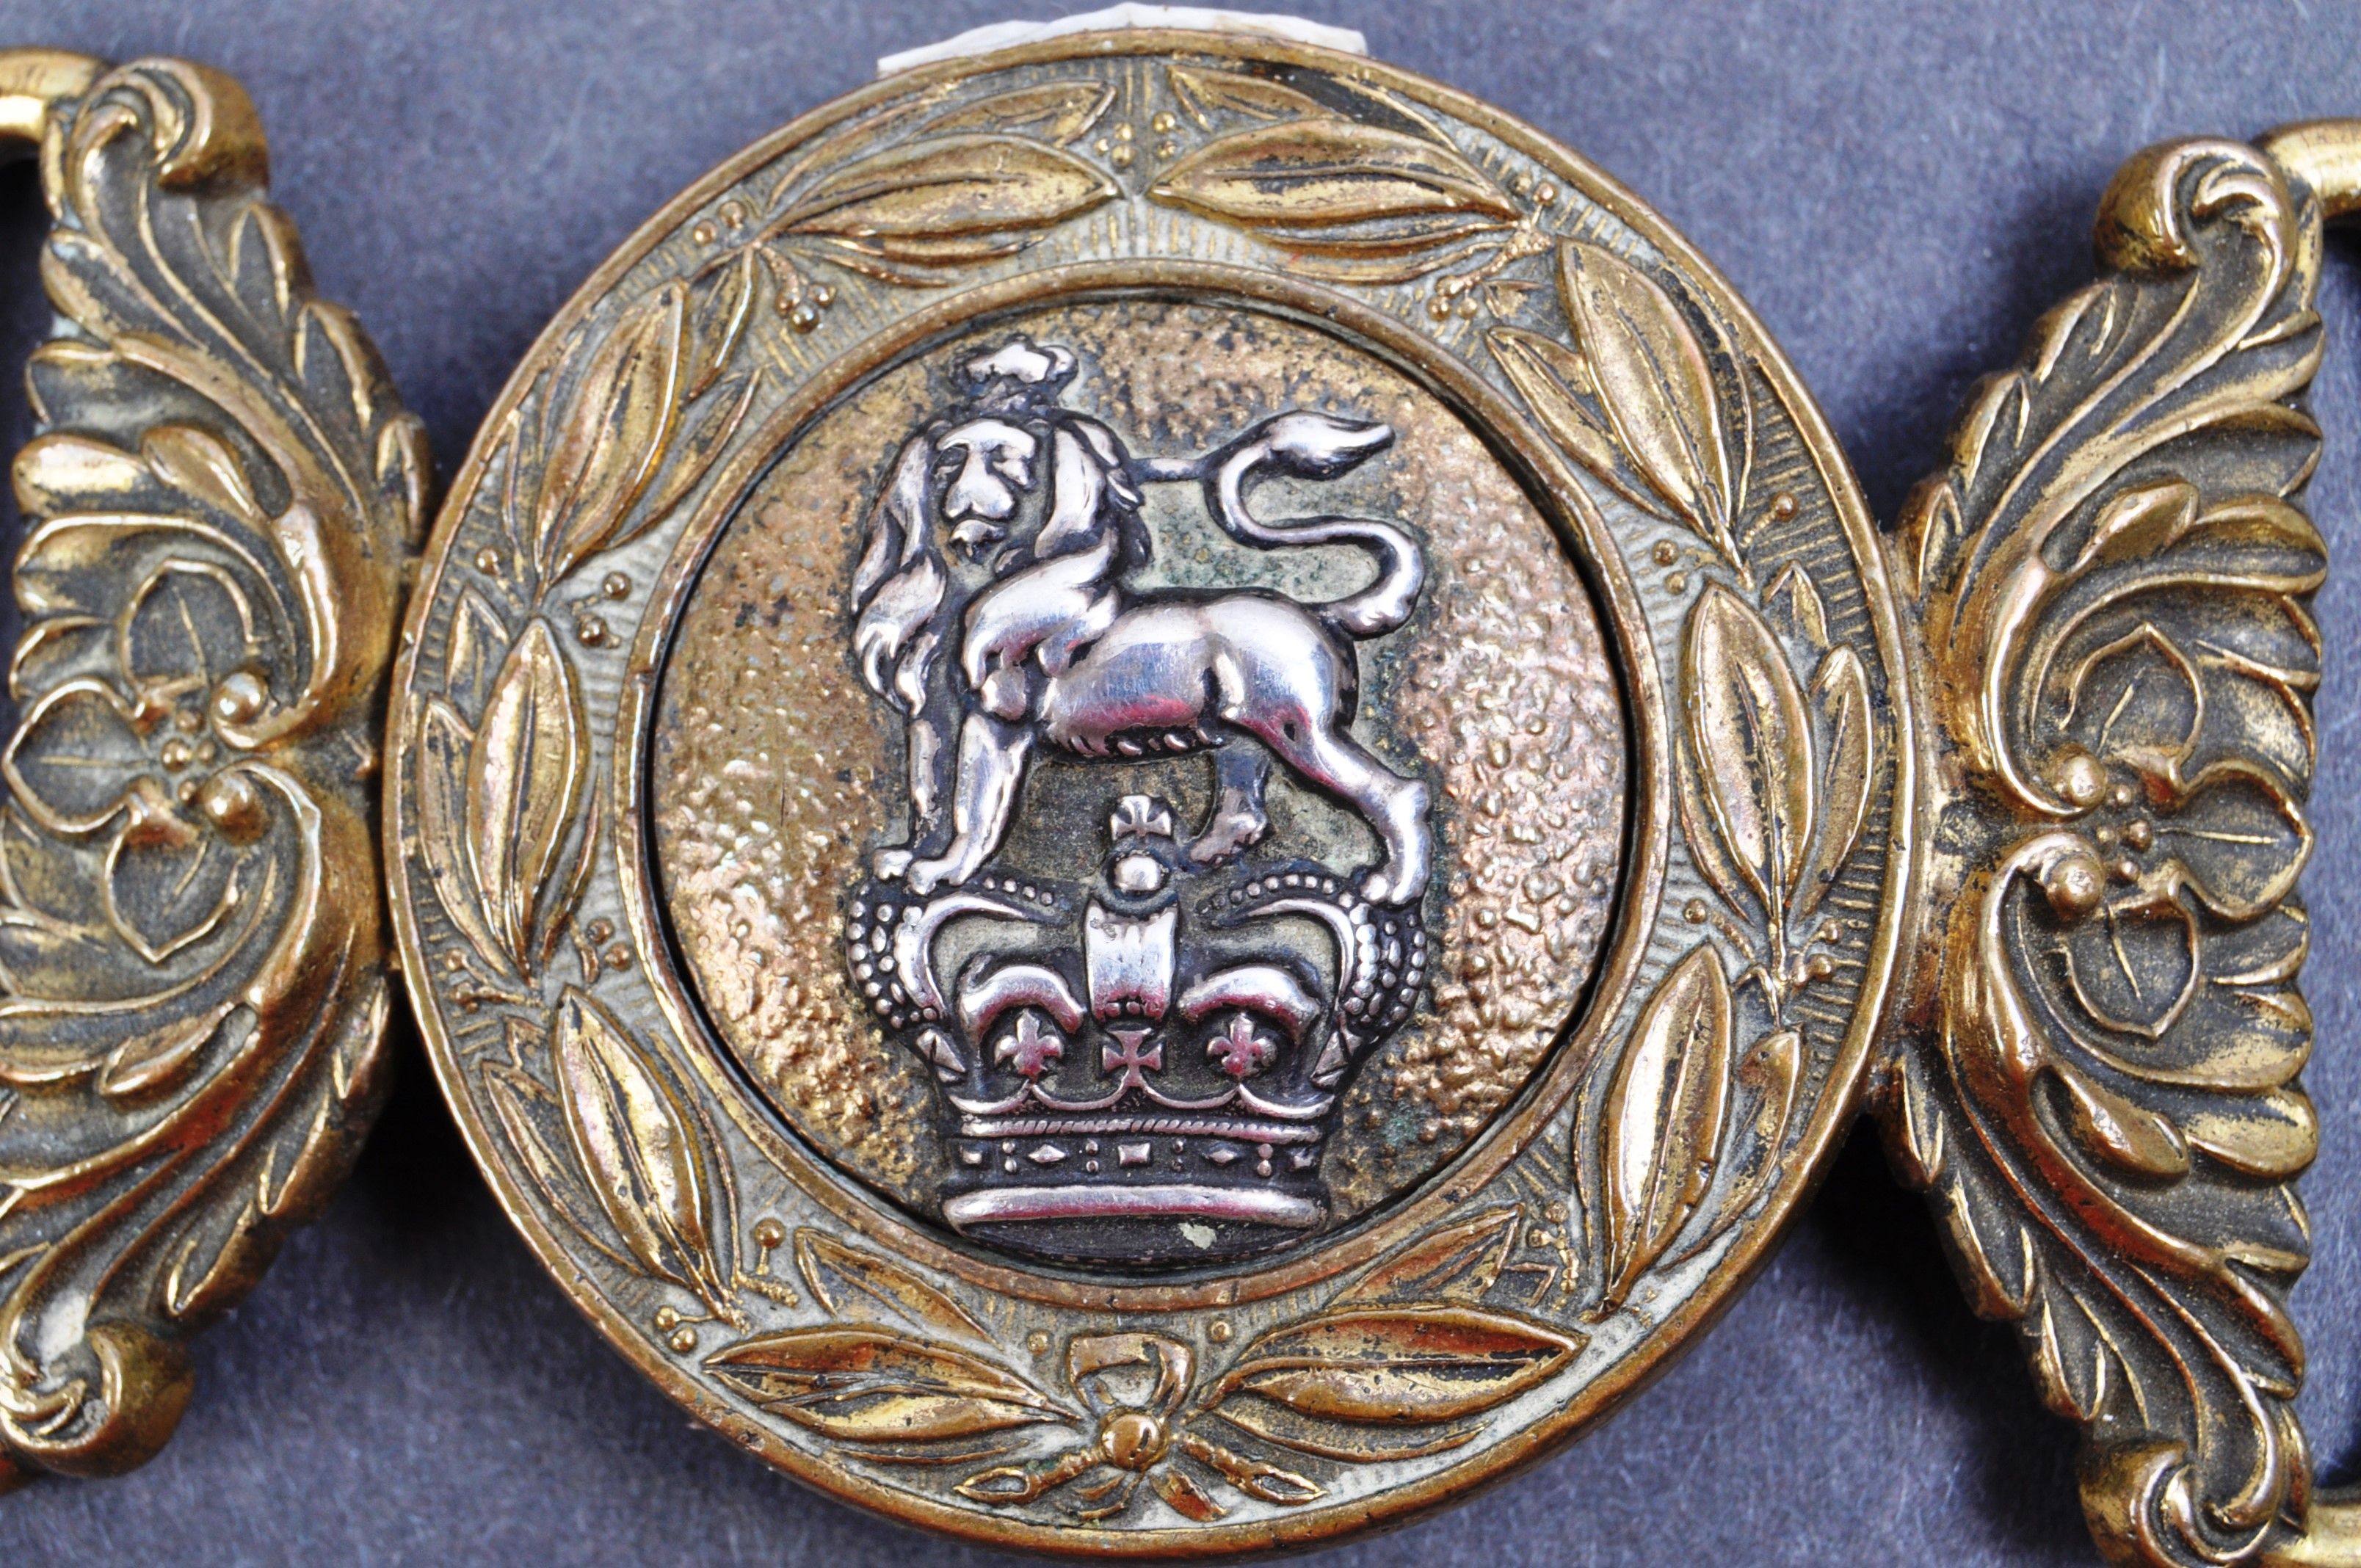 19TH CENTURY VICTORIAN BRITISH ARMY OFFICERS UNIFORM BELT BUCKLE - Image 2 of 4